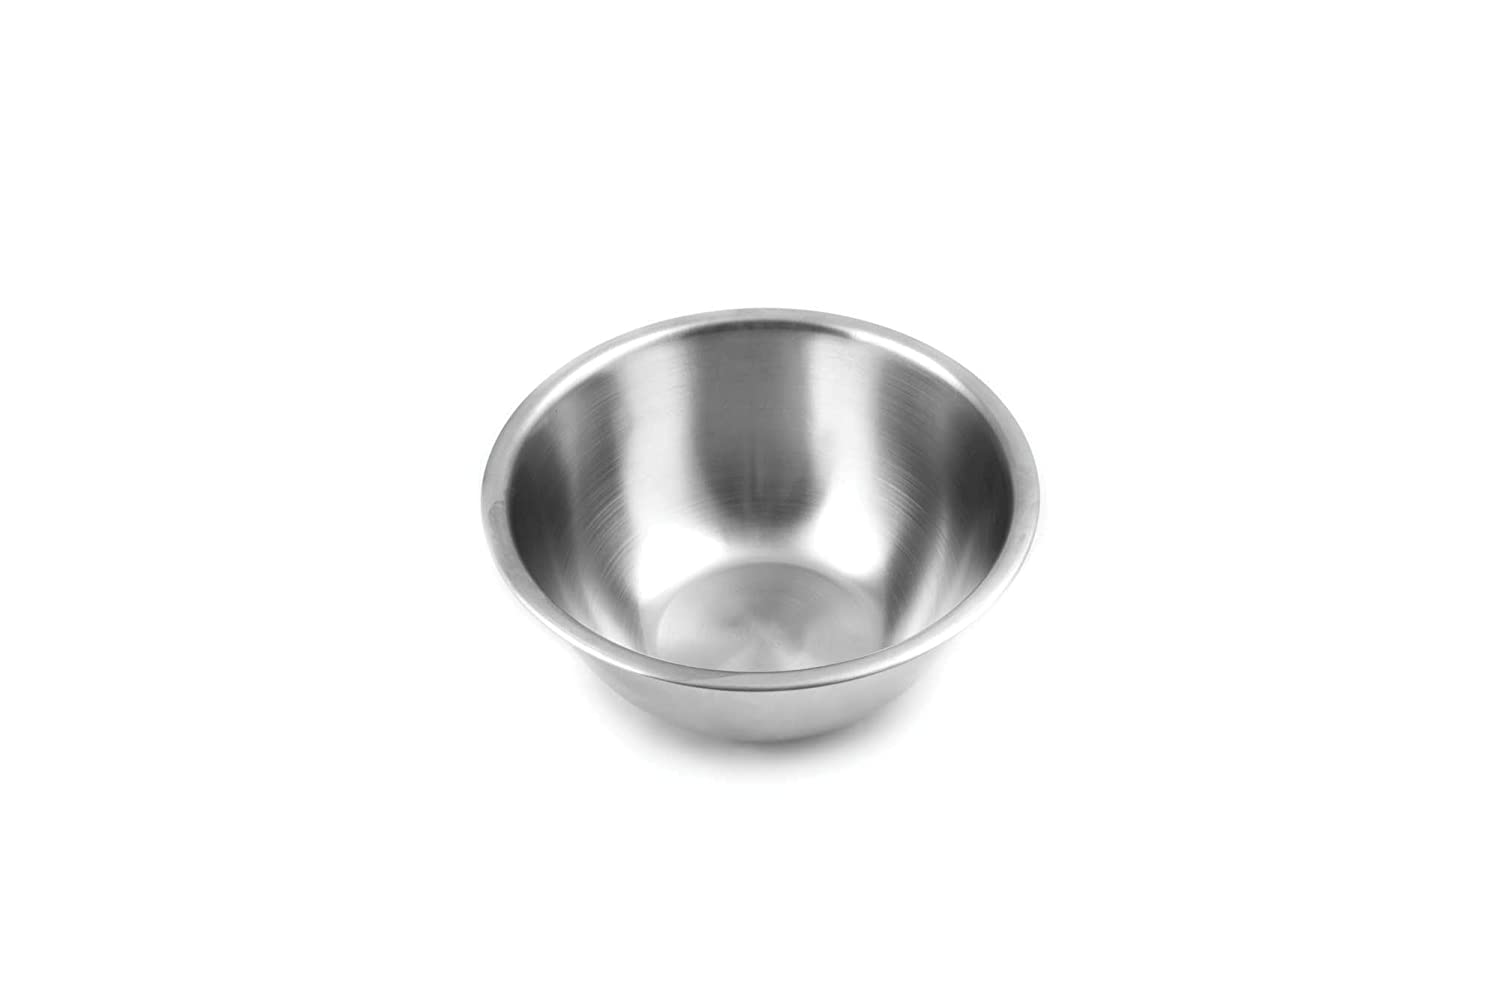 Fox Run 7326 Stainless Steel Small Mixing Bowl, 7.25 x 7.25 x 3.75 inches, Metallic